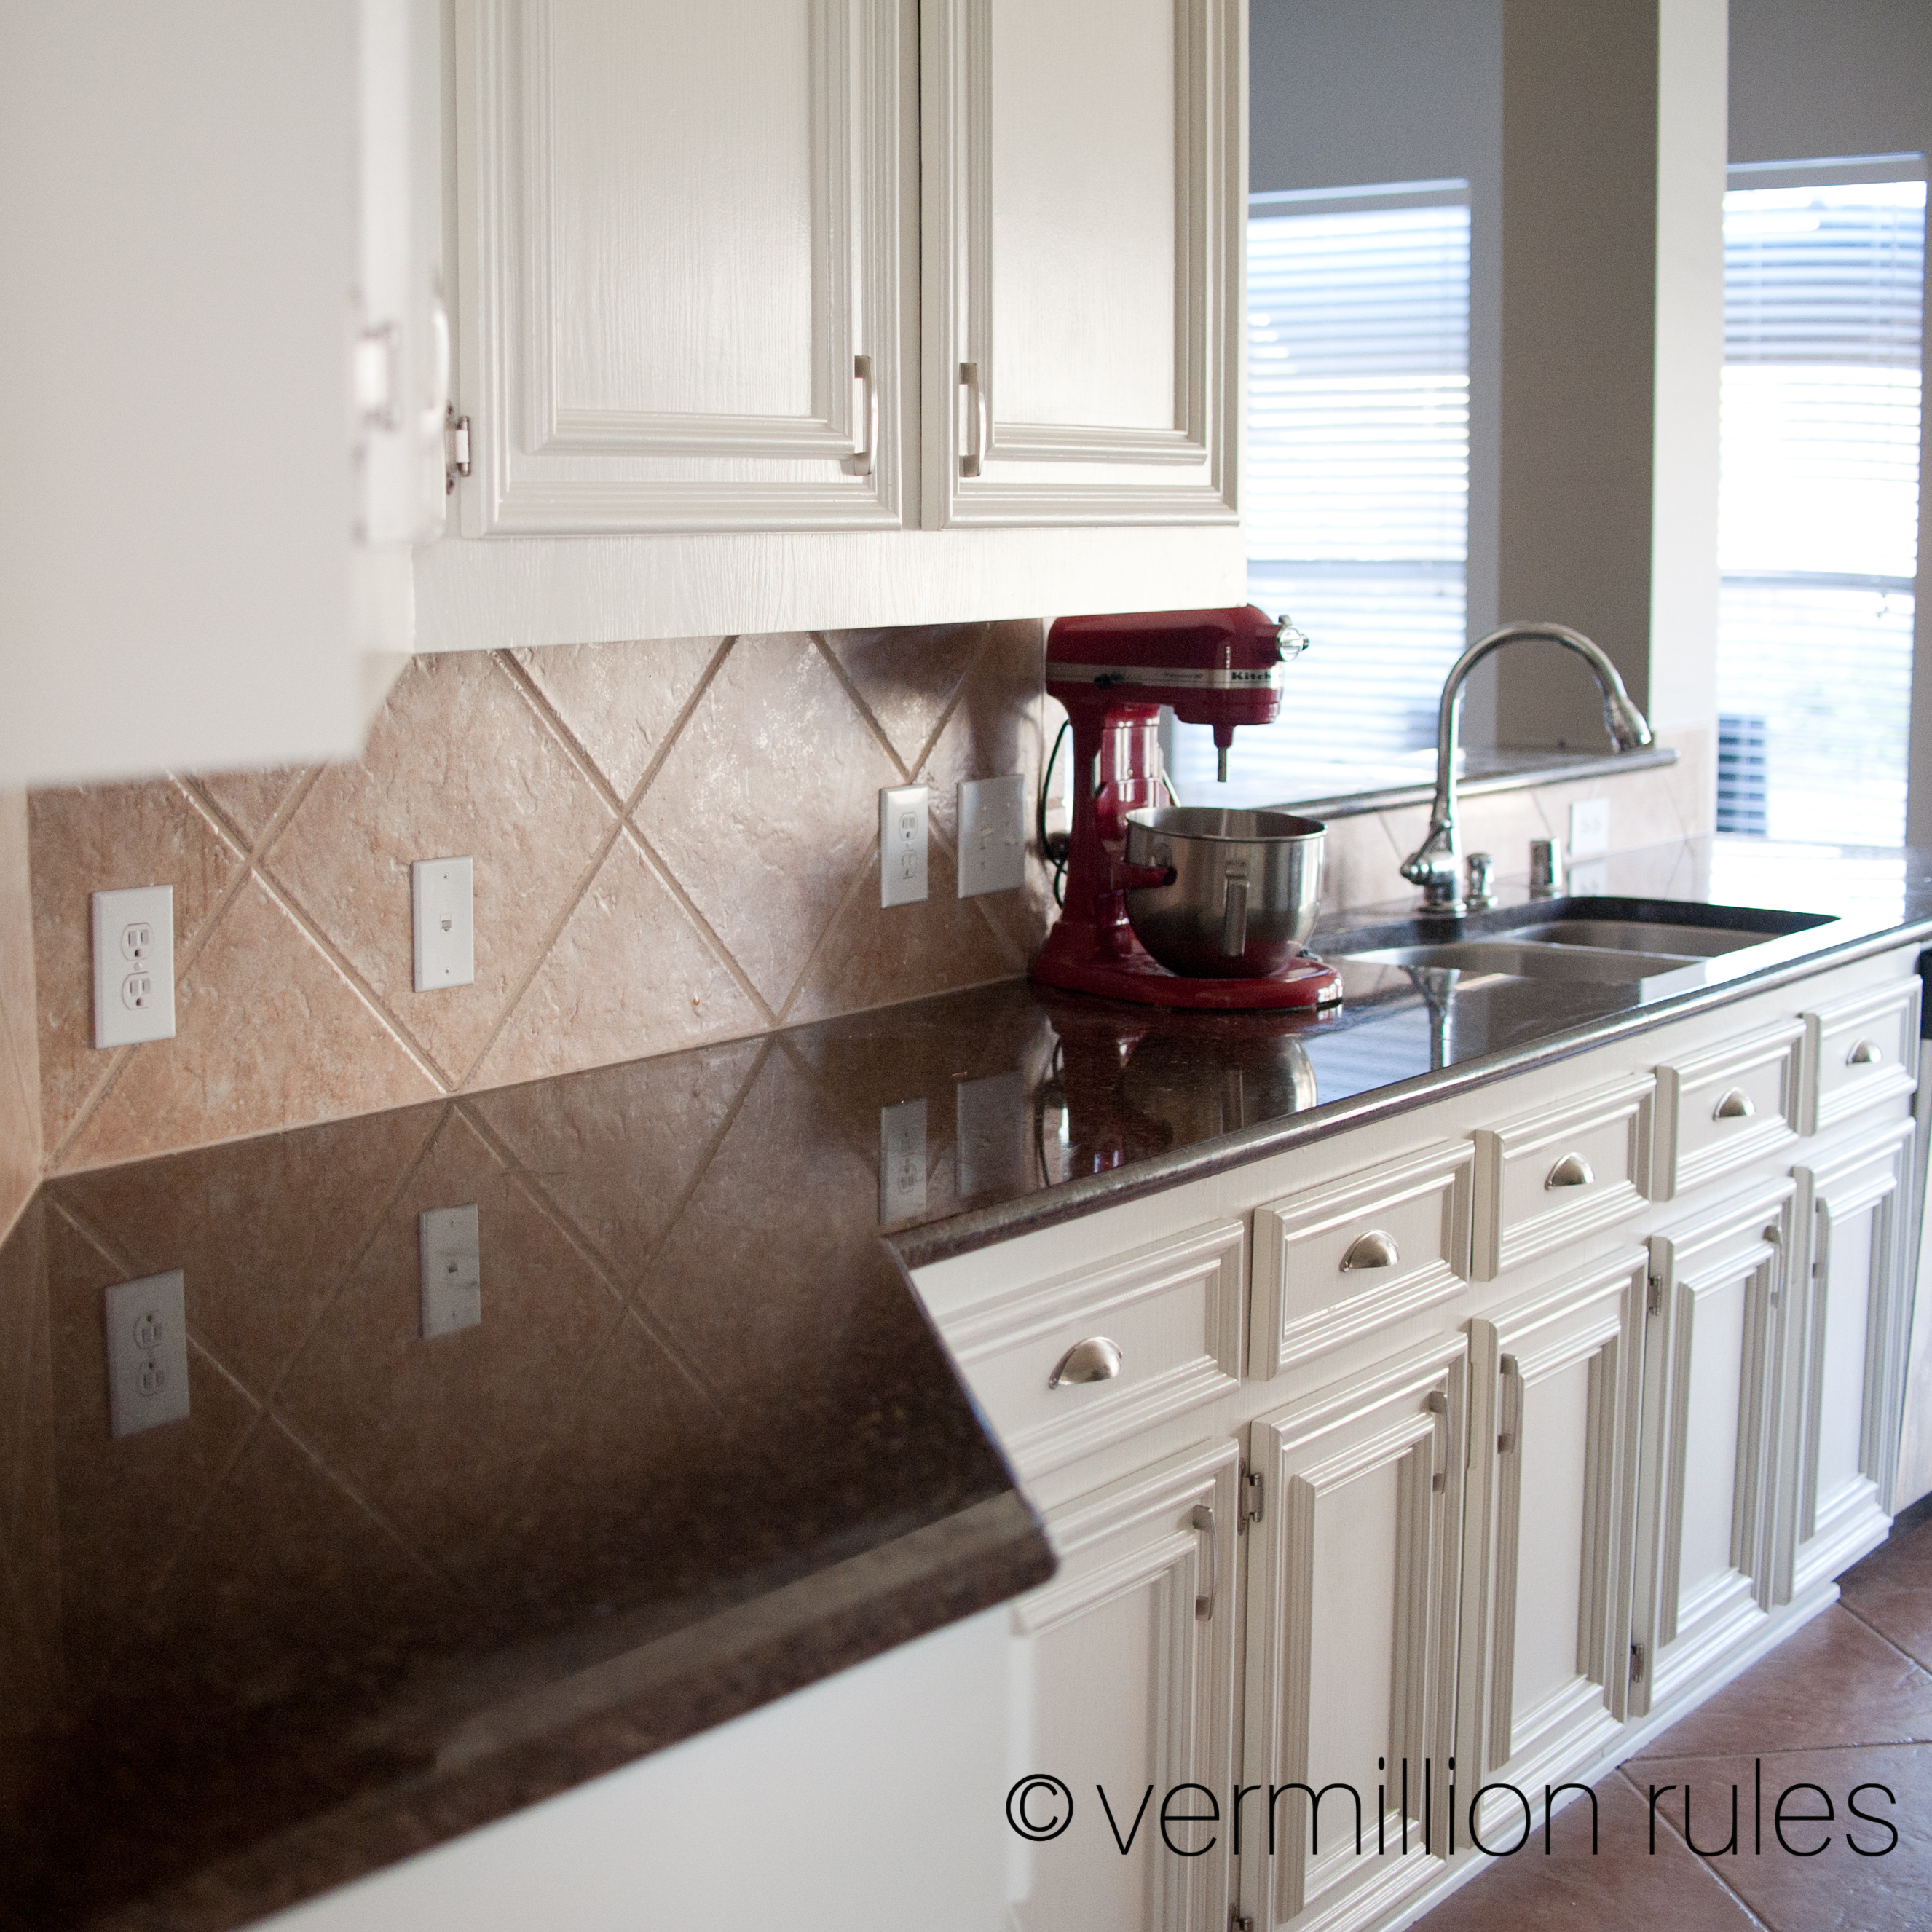 Material For Kitchen Cabinet: A DIY Project: Painting Your Kitchen Cabinets